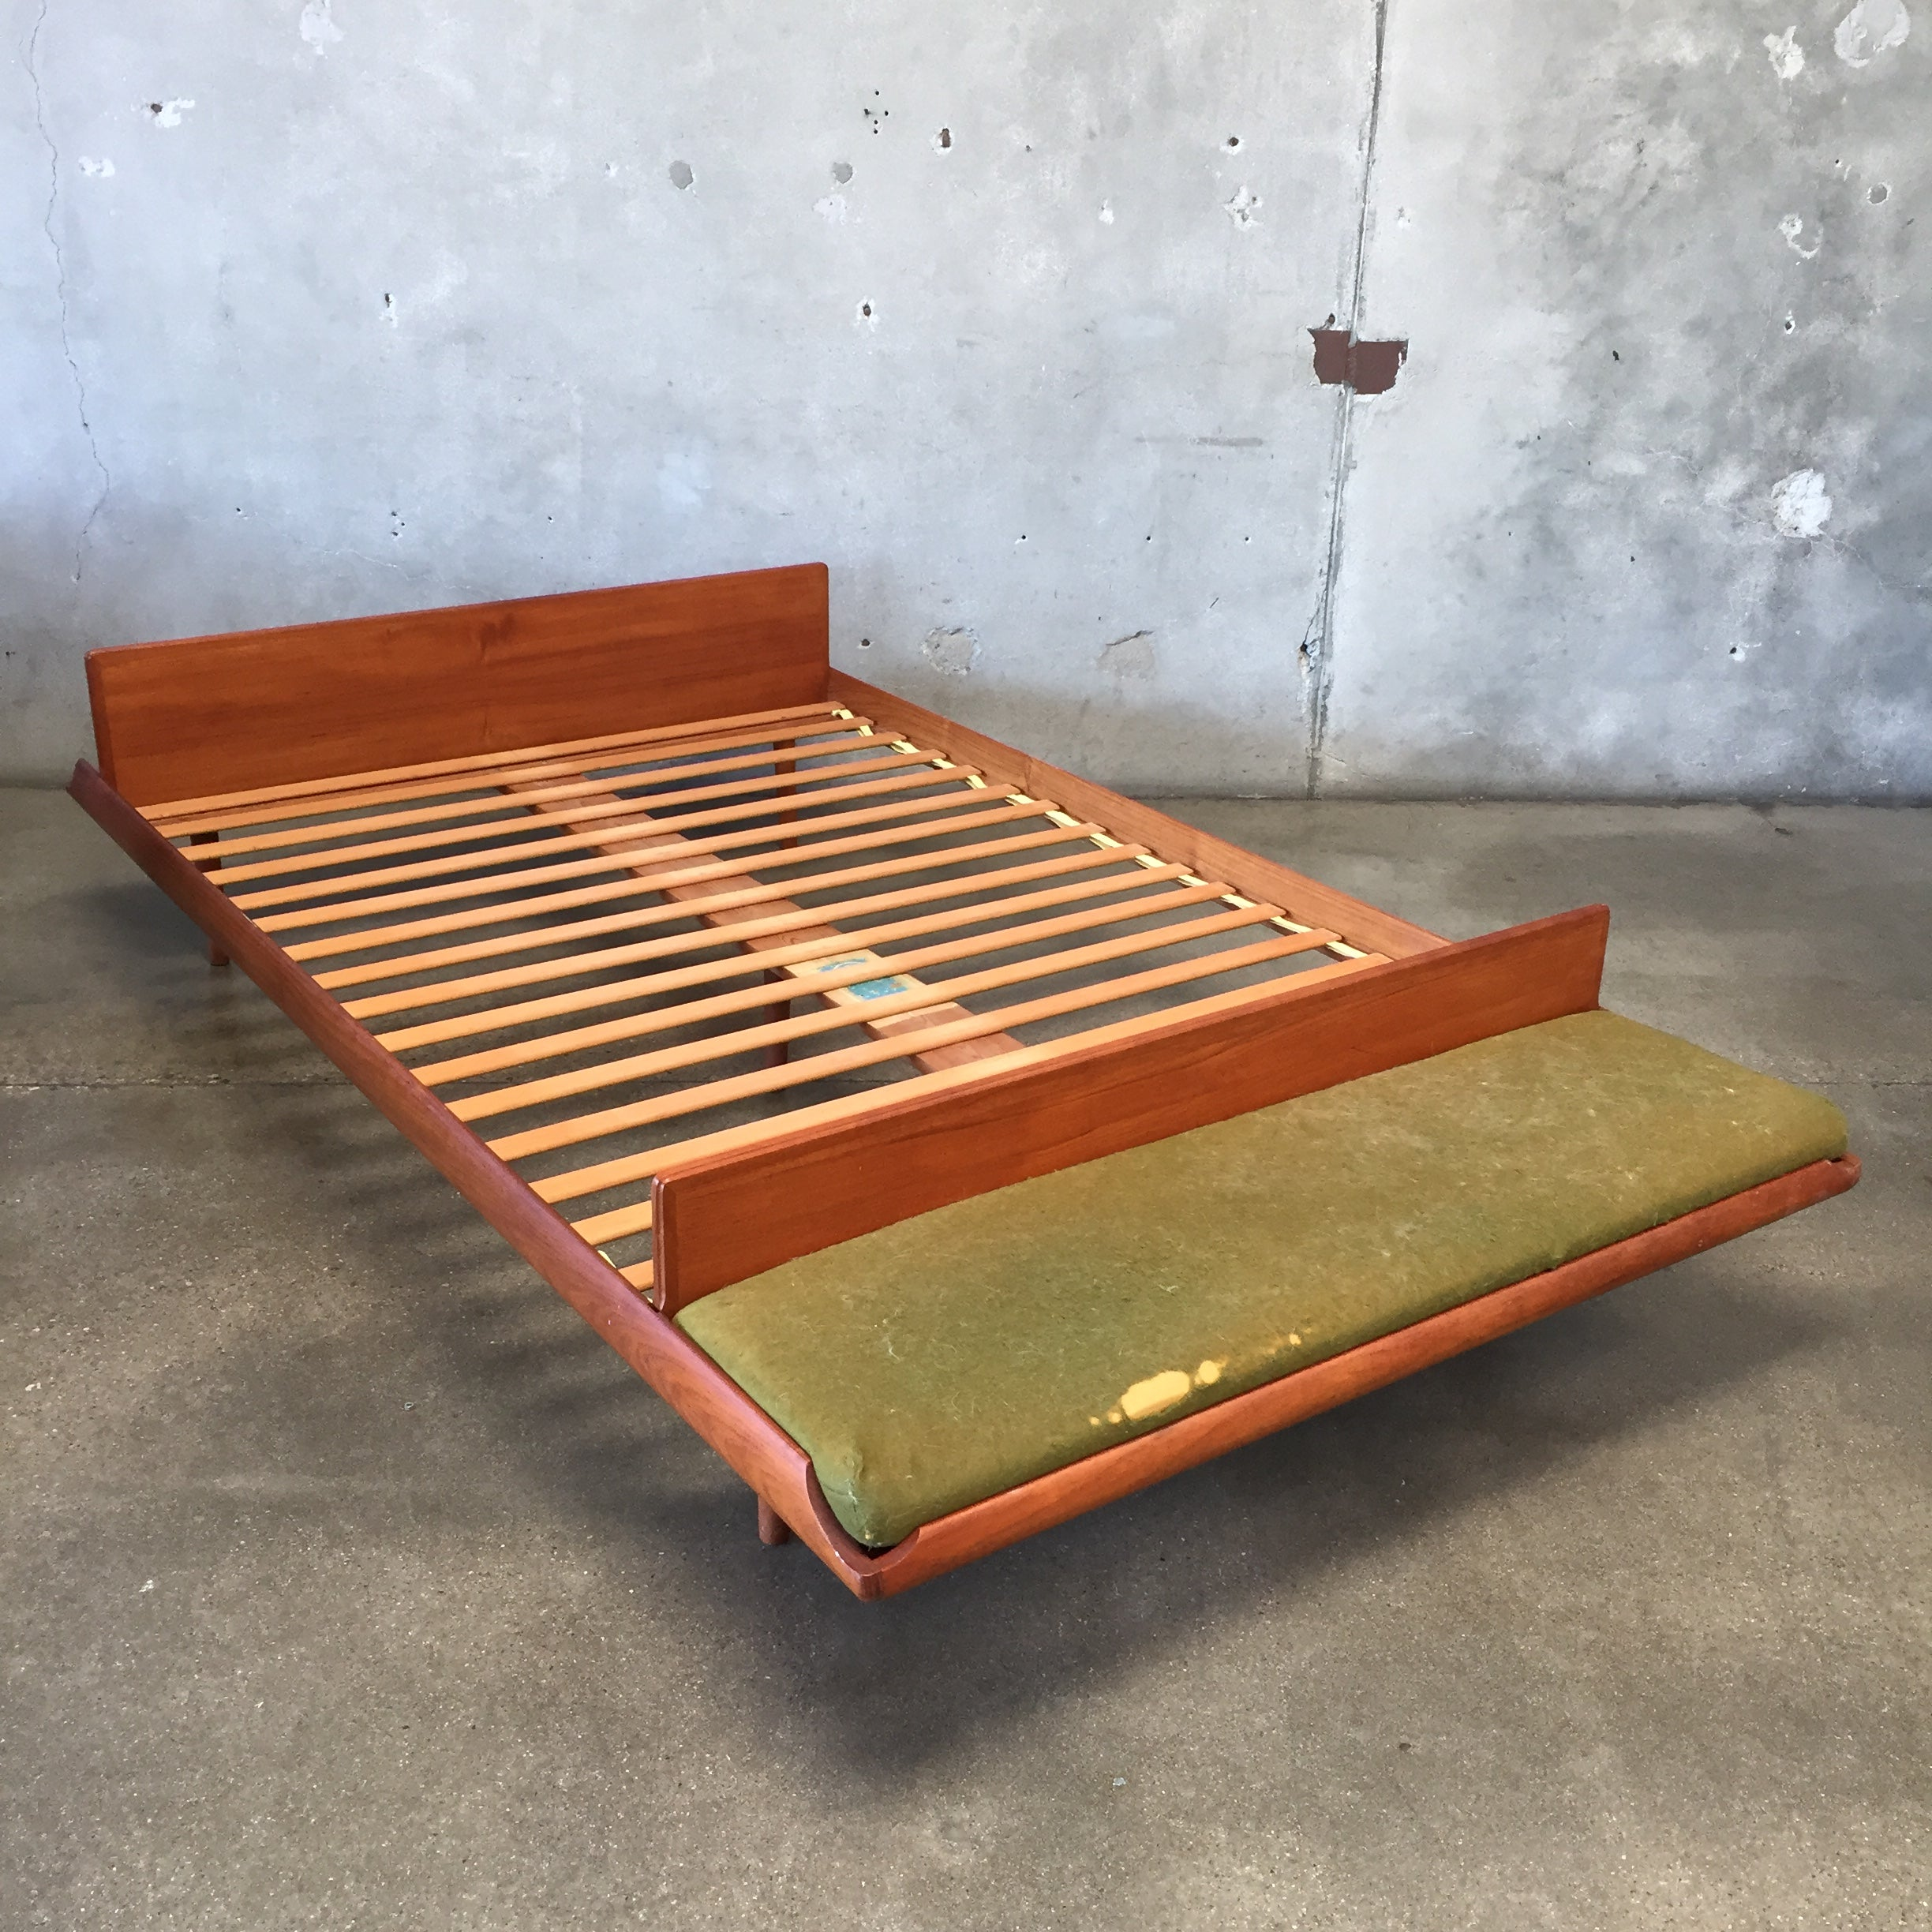 Phenomenal Cave Sanford Teak Platform Bed With Bench Pdpeps Interior Chair Design Pdpepsorg